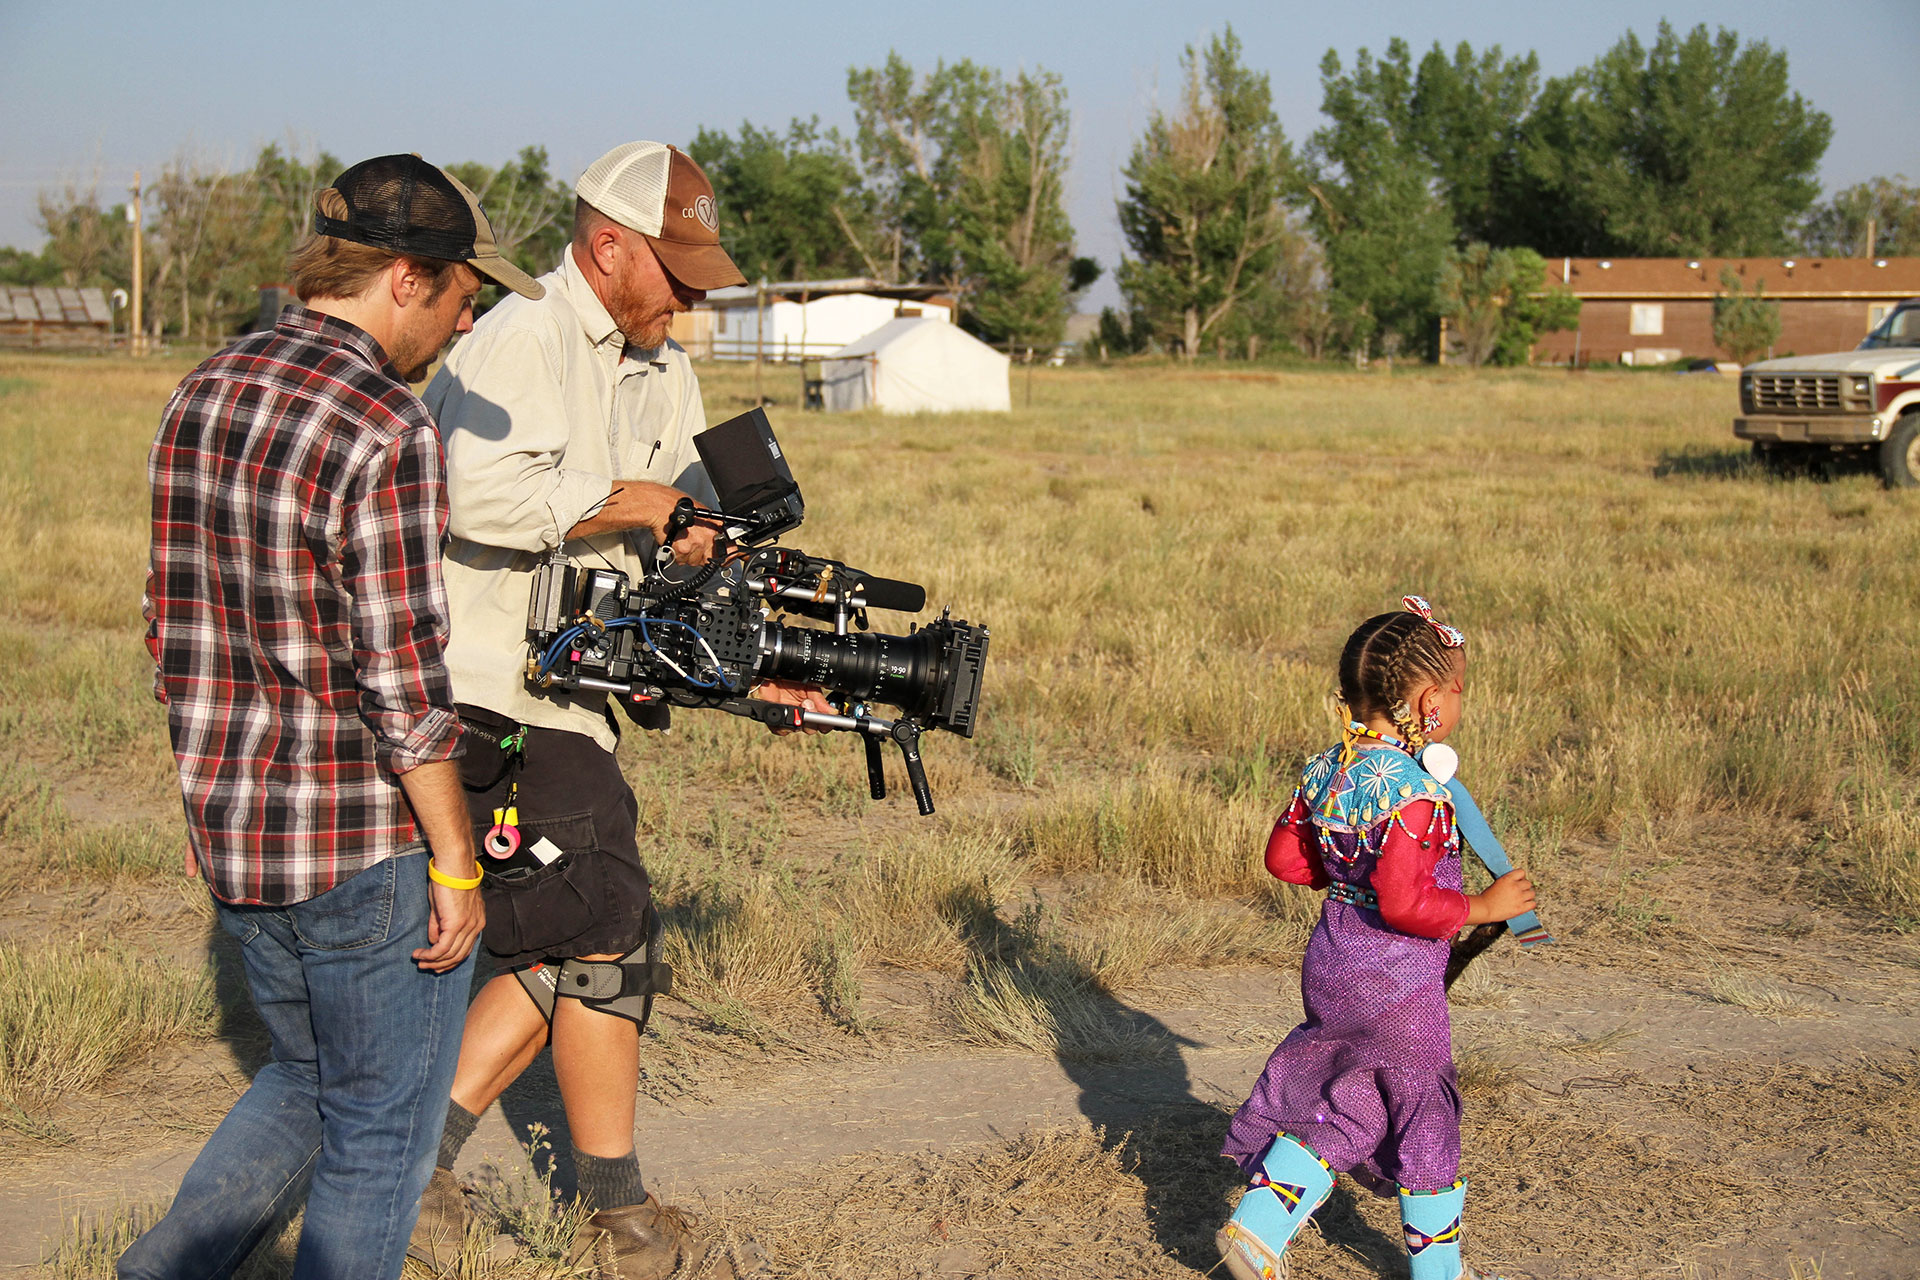 Wind River Director, Mat Hames, and DP, Wilson Waggoner, film a Northern Arapaho child at the Ethete Powwow.